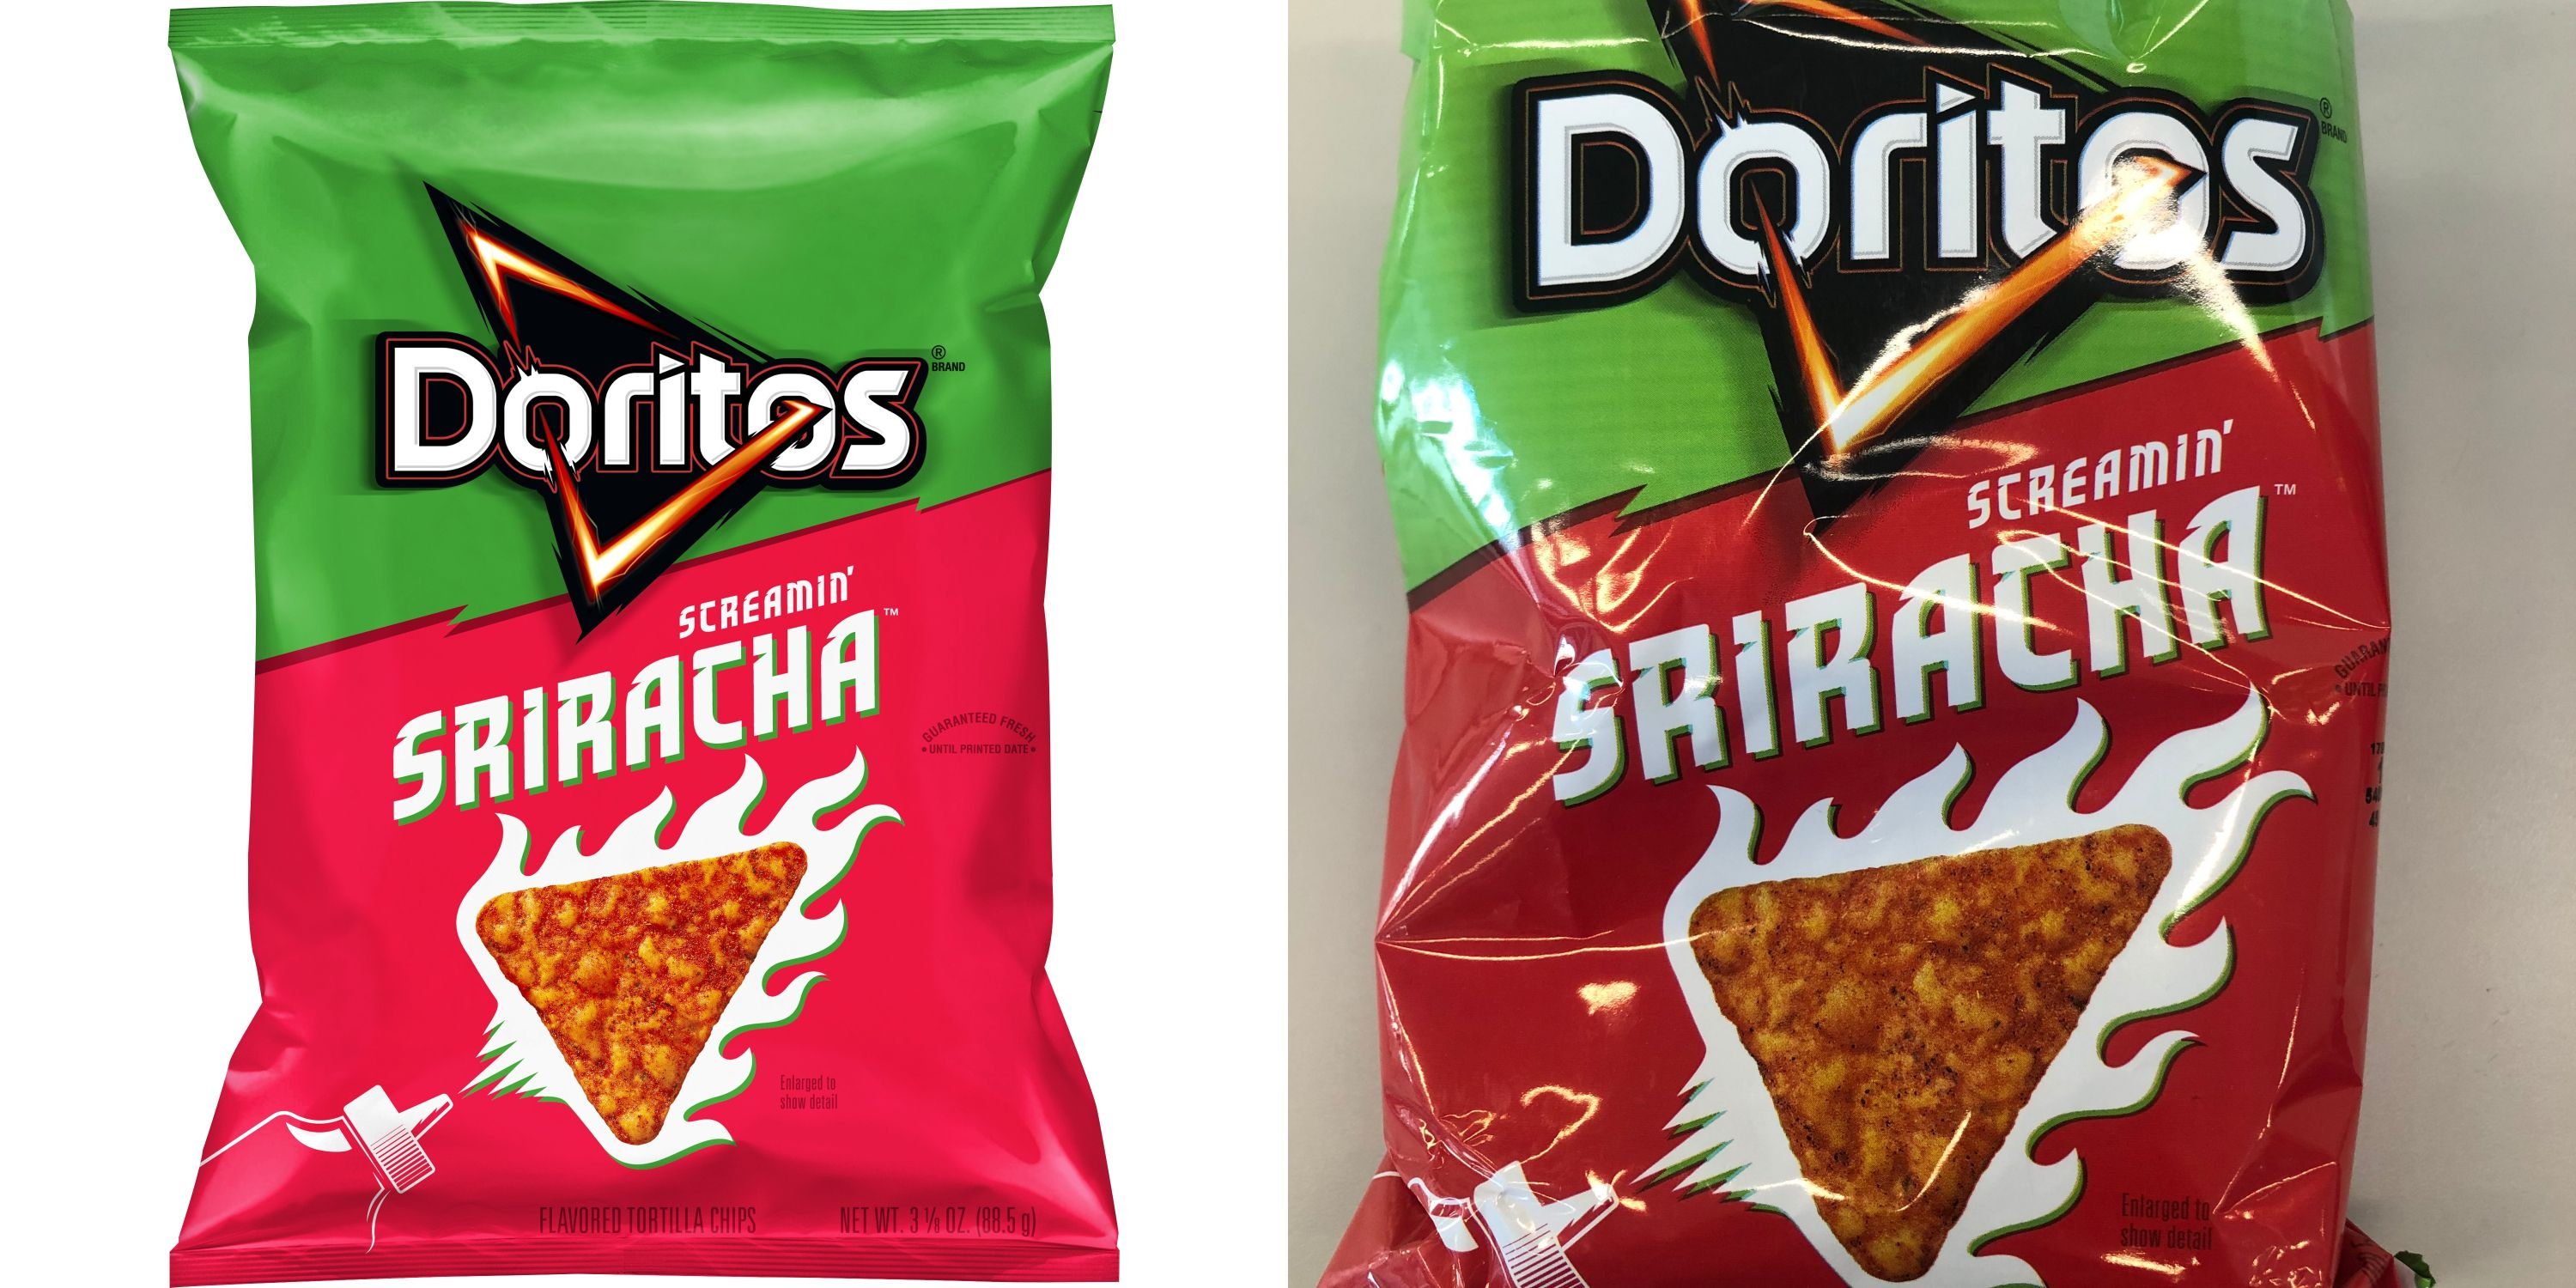 Doritos Announced A Sriracha-Flavored Chip That's Only Around For A Limited Time